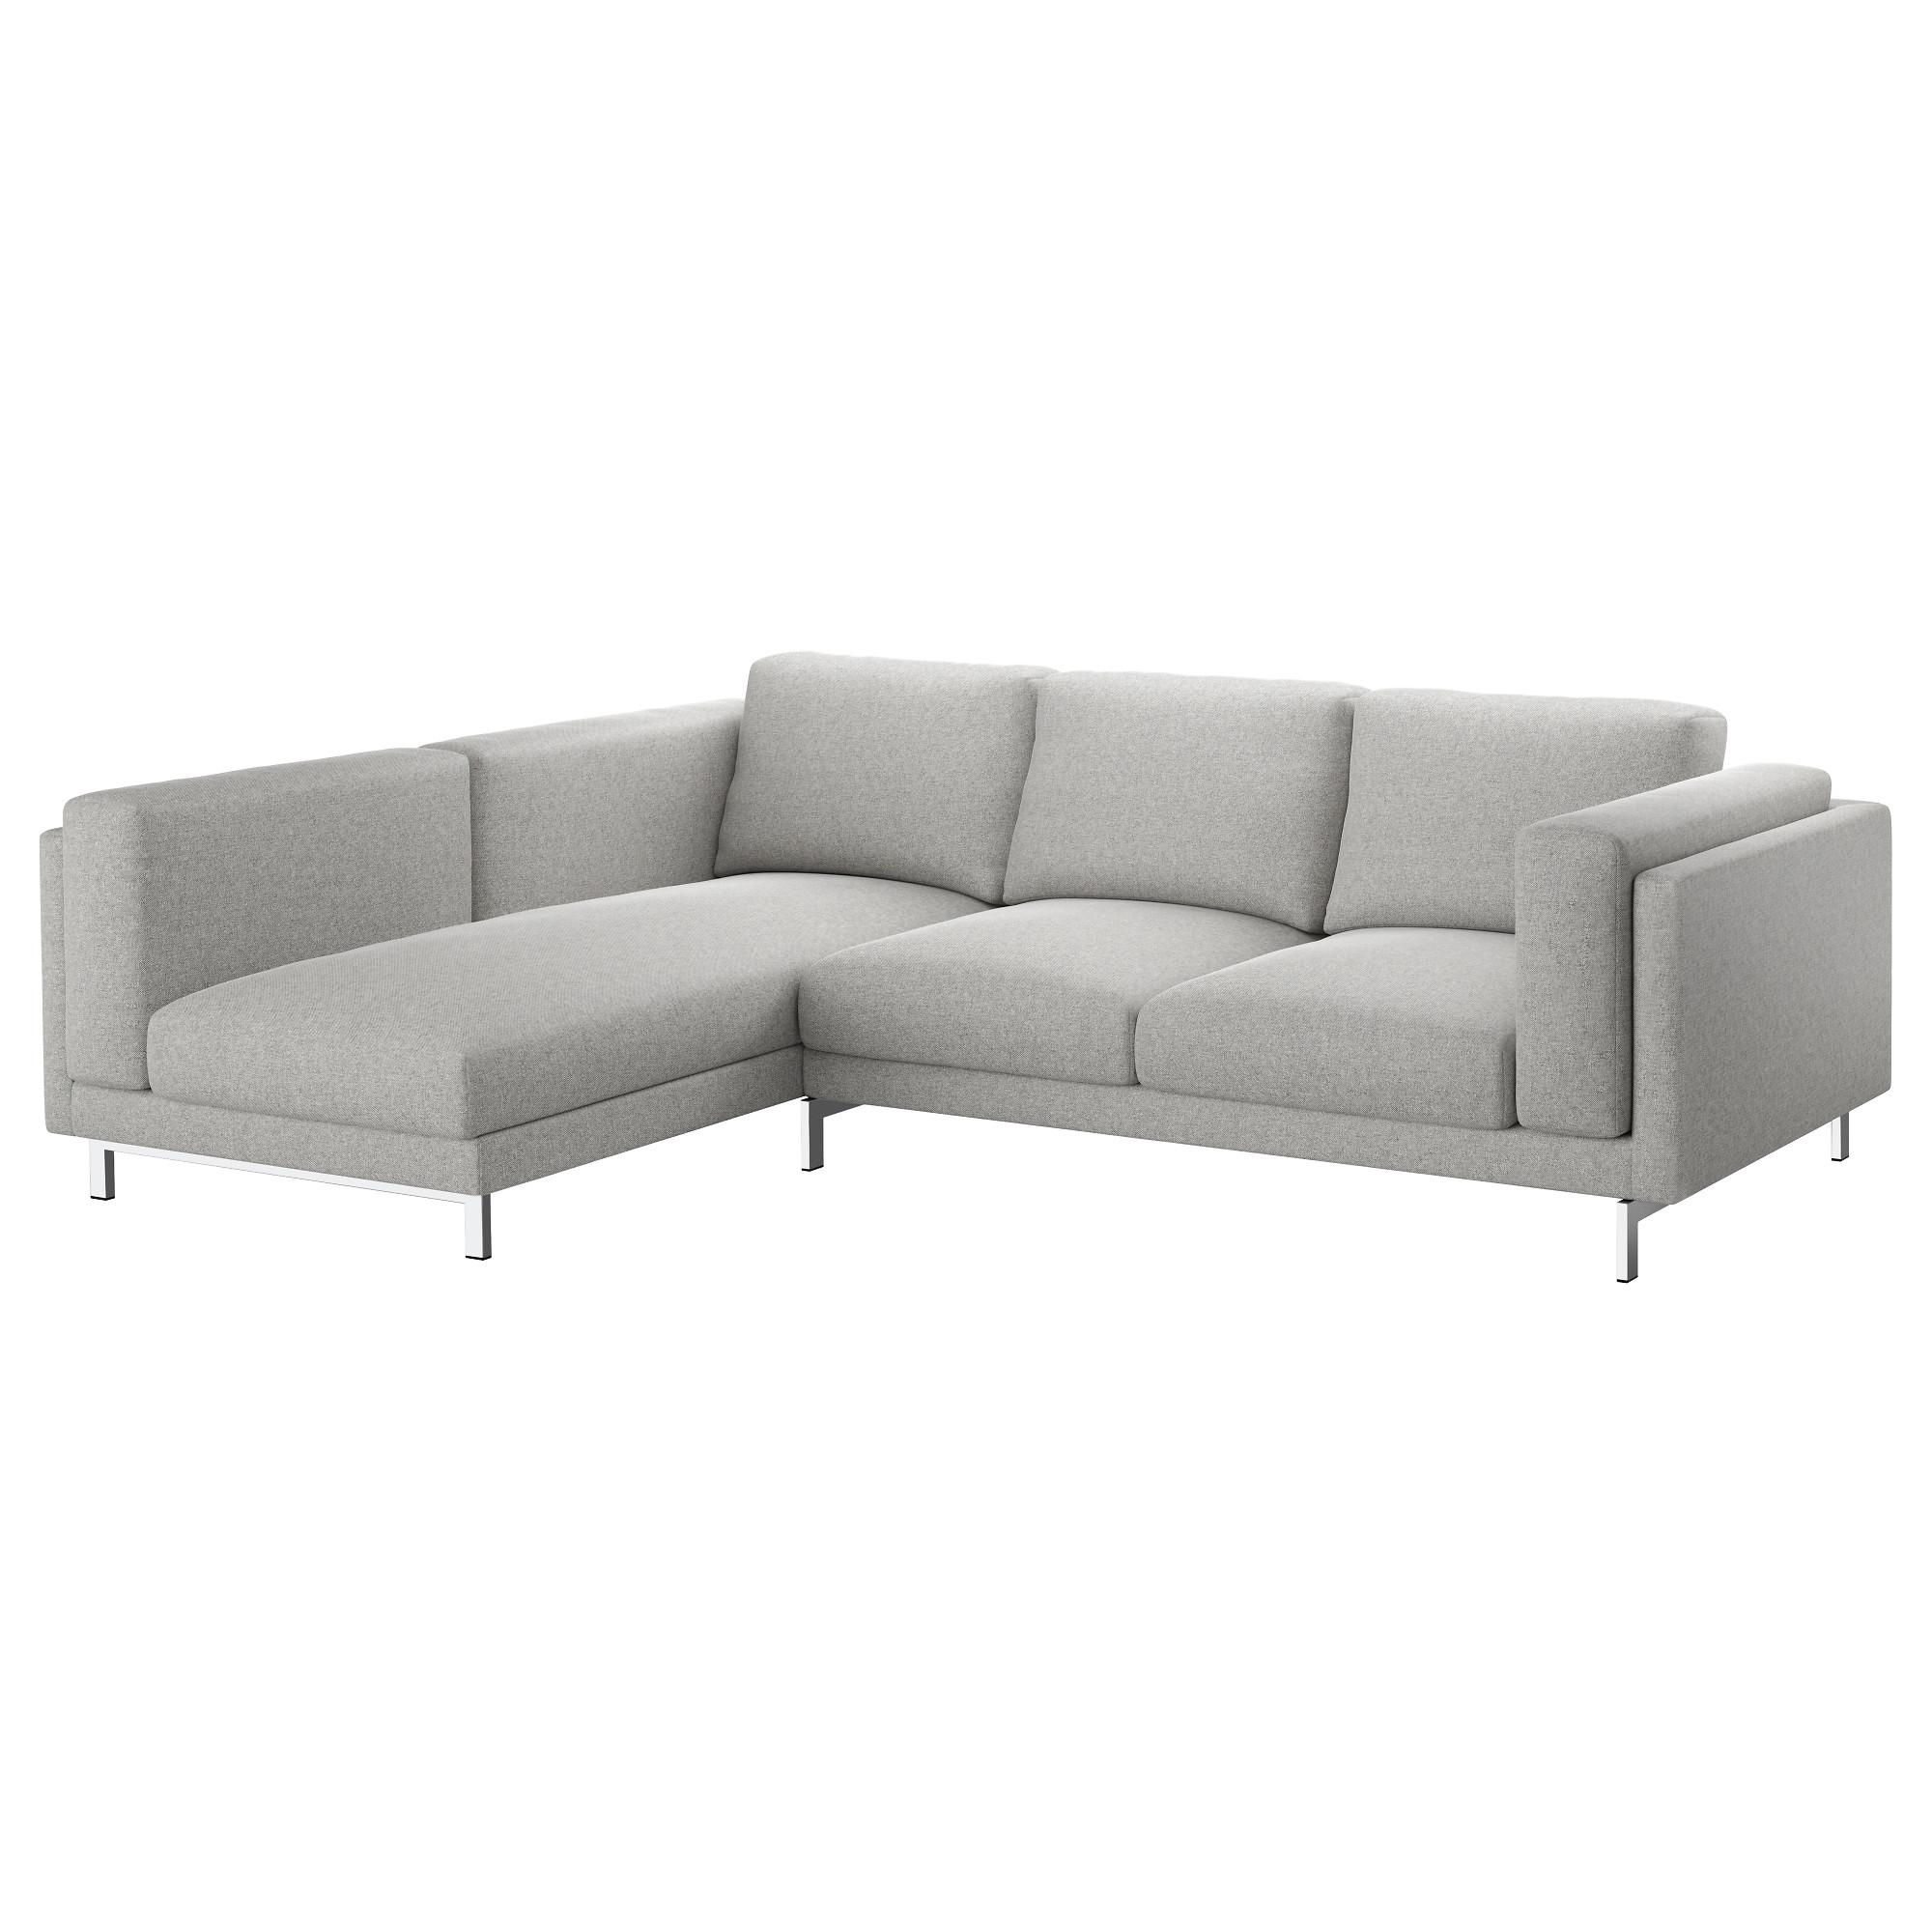 Fabric Sectional Sofas – Ikea Intended For Furniture Sectionals Ikea (Image 2 of 15)